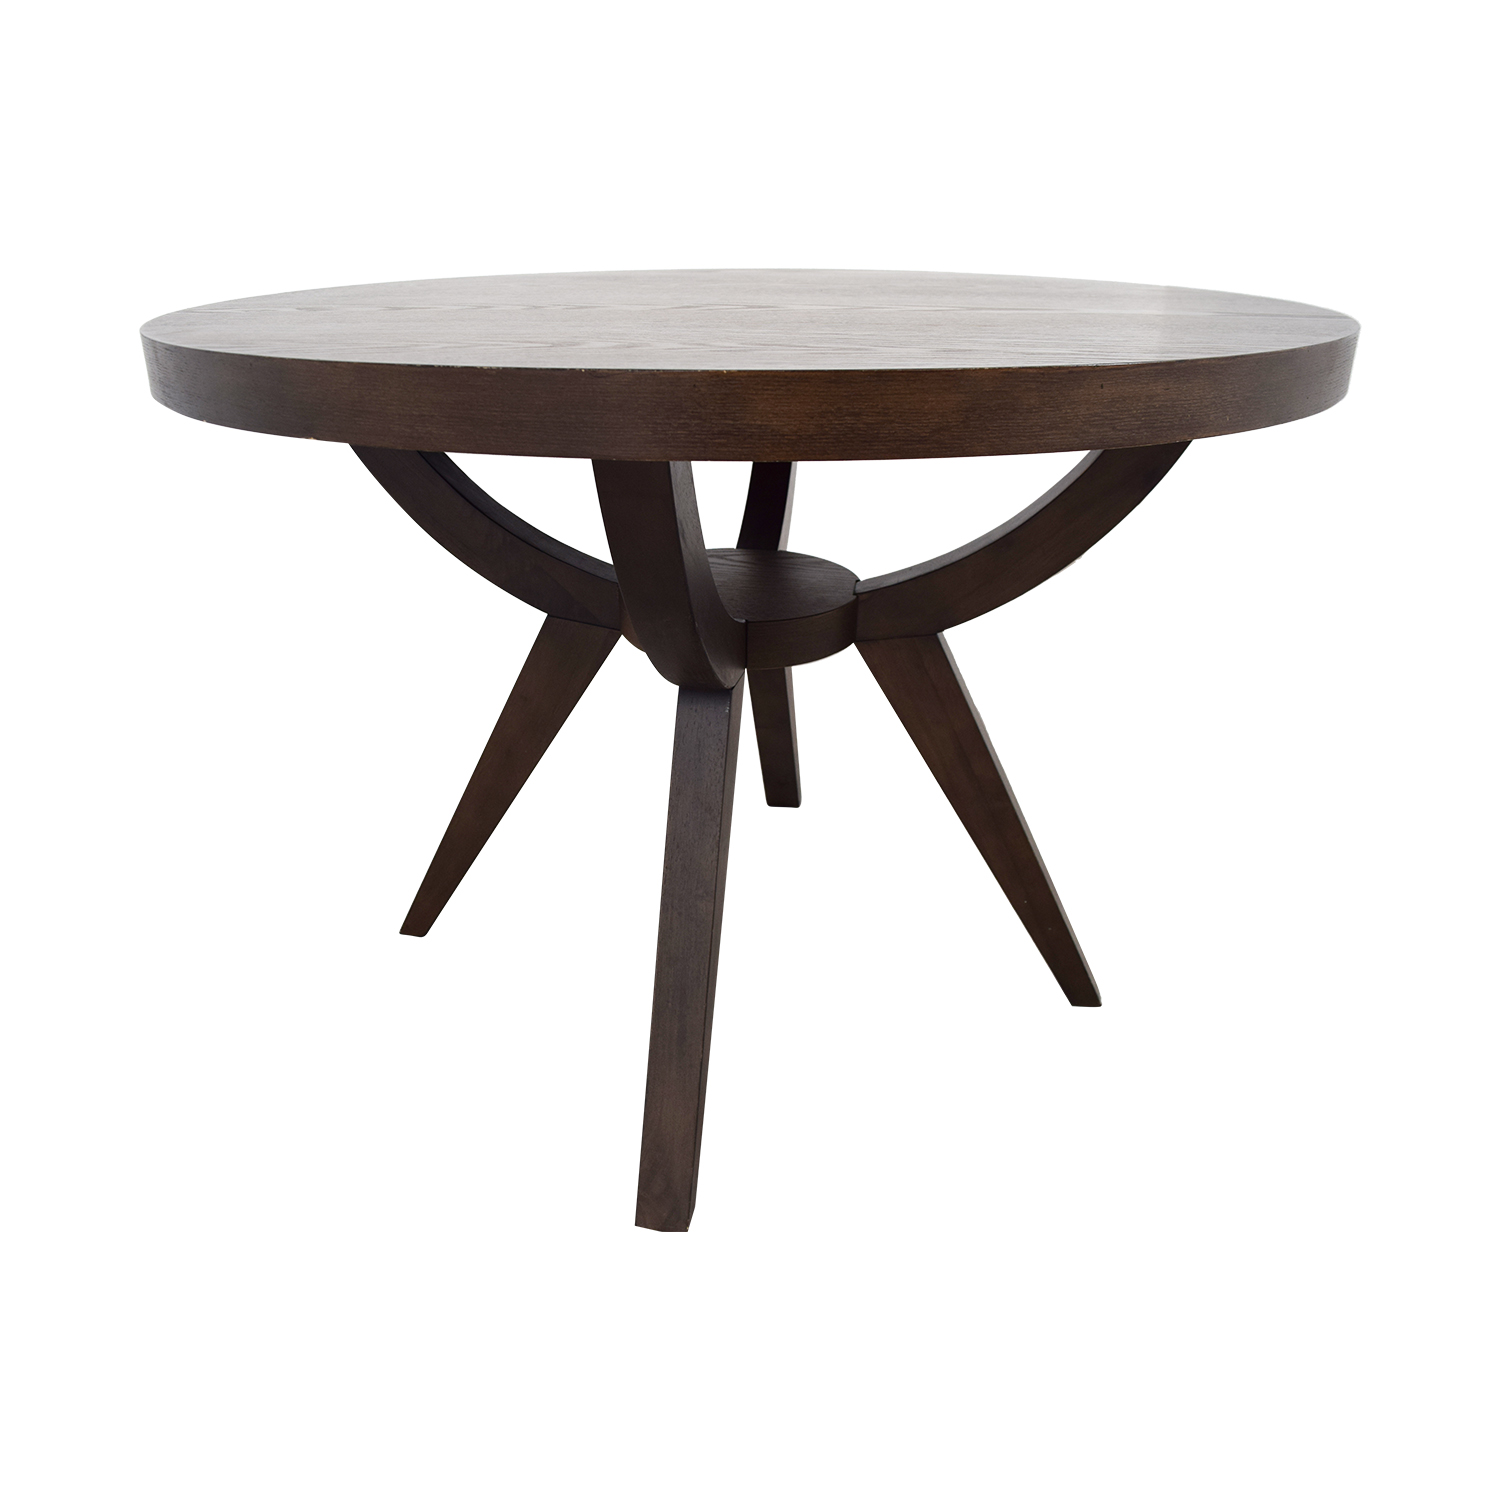 West Elm West Elm Arc Pedestal Dining Table Dinner Tables